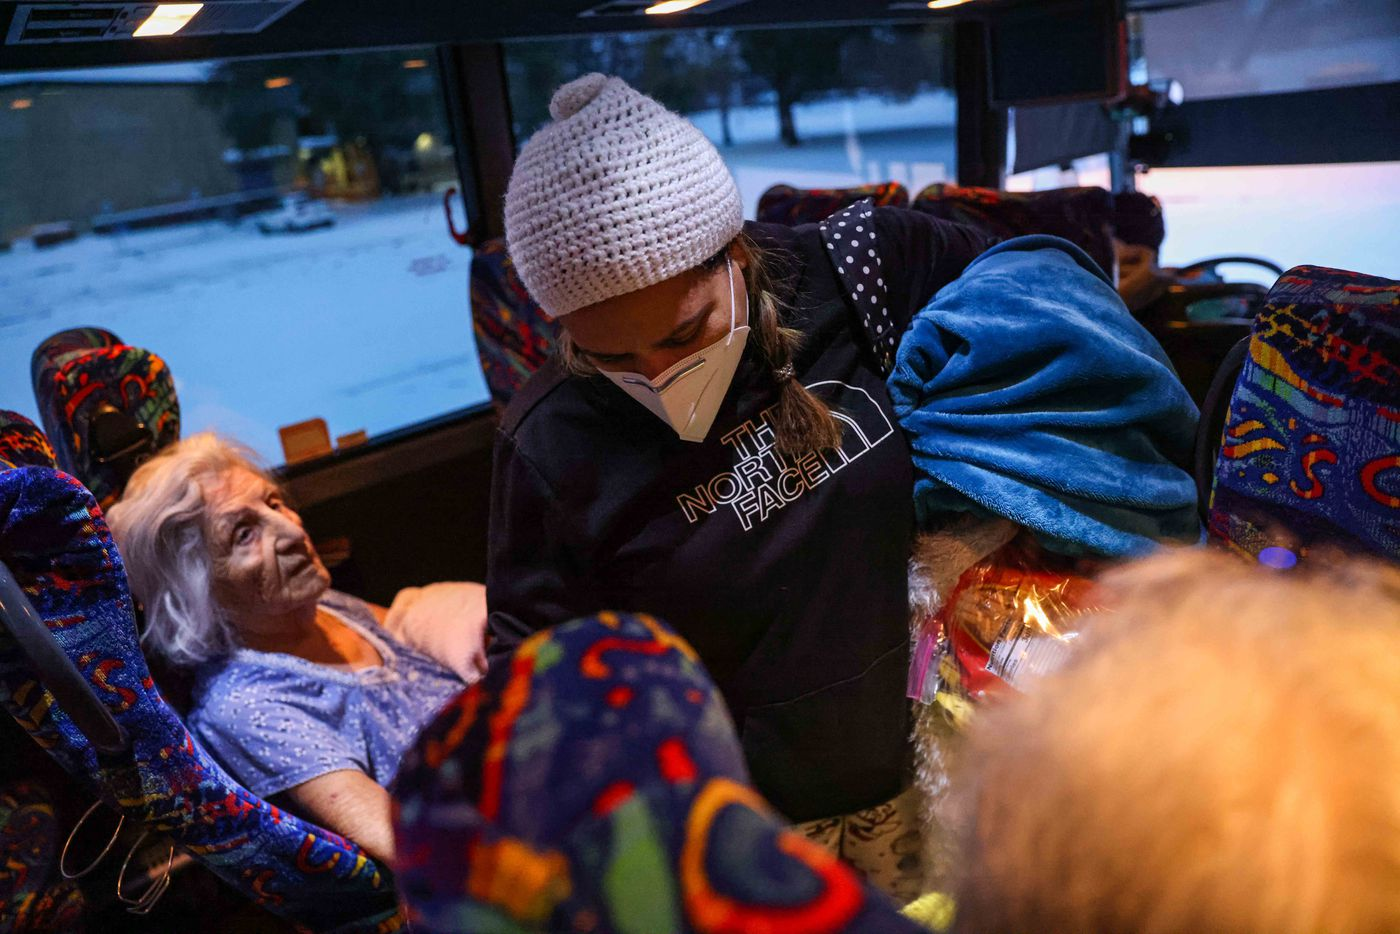 Marleny Almendarez, 38, makes her way into the bus that serves as a warming center at Pleasant Oaks Recreation Center for the second consecutive night on Wednesday, February 18, 2021 in Dallas.